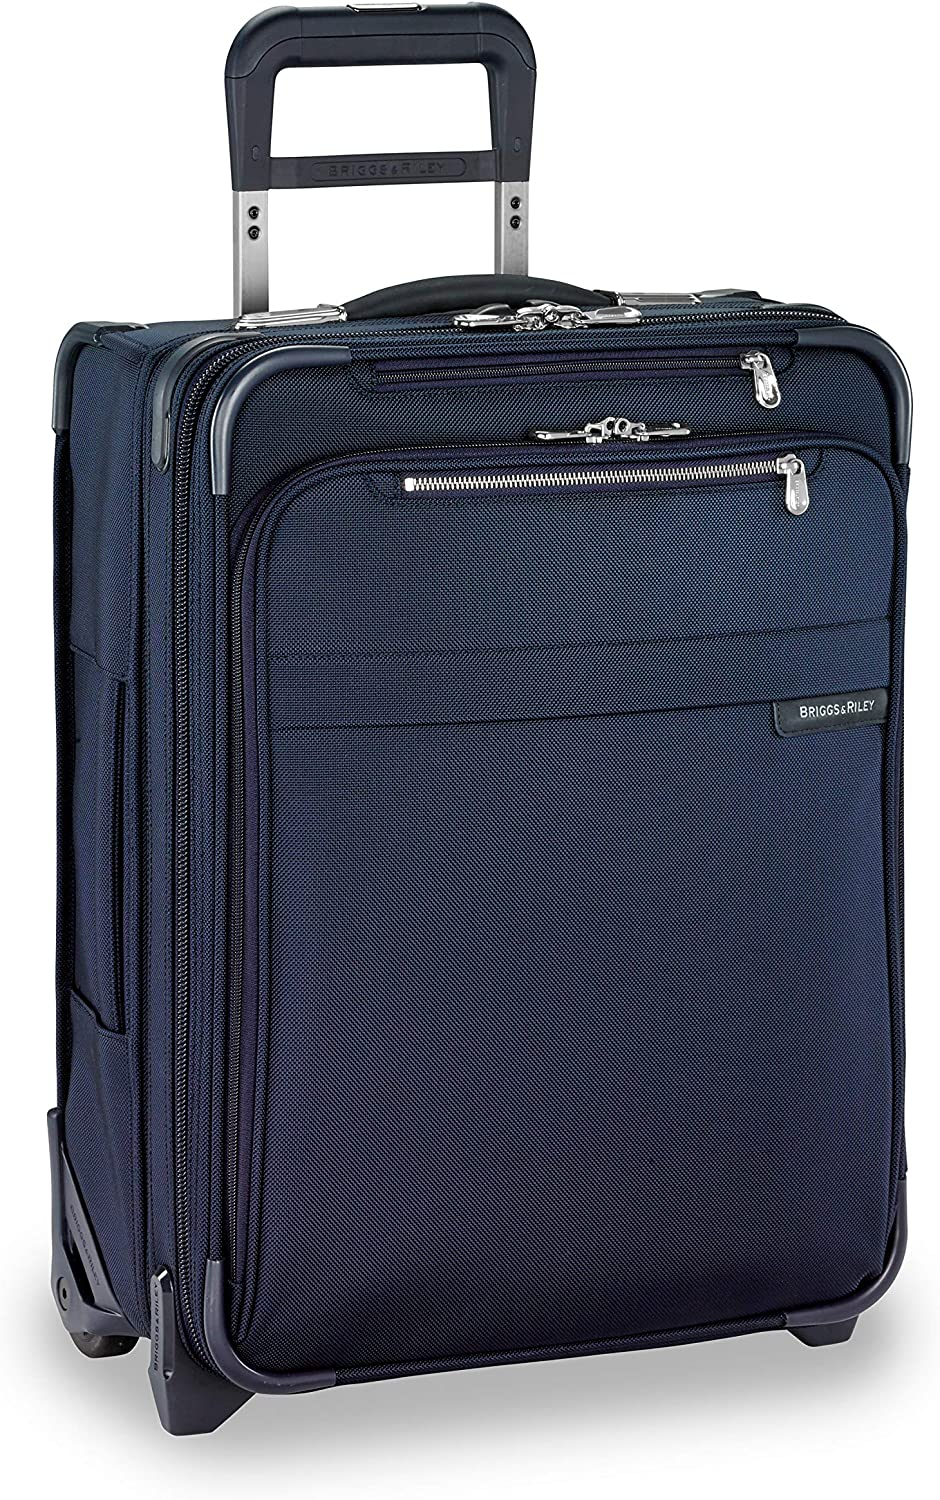 Briggs & Riley Baseline International Carry-On Expandable Wide-Body Upright Equipaje de Mano, 54 cm, 58.5 Liters, Azul (Navy)